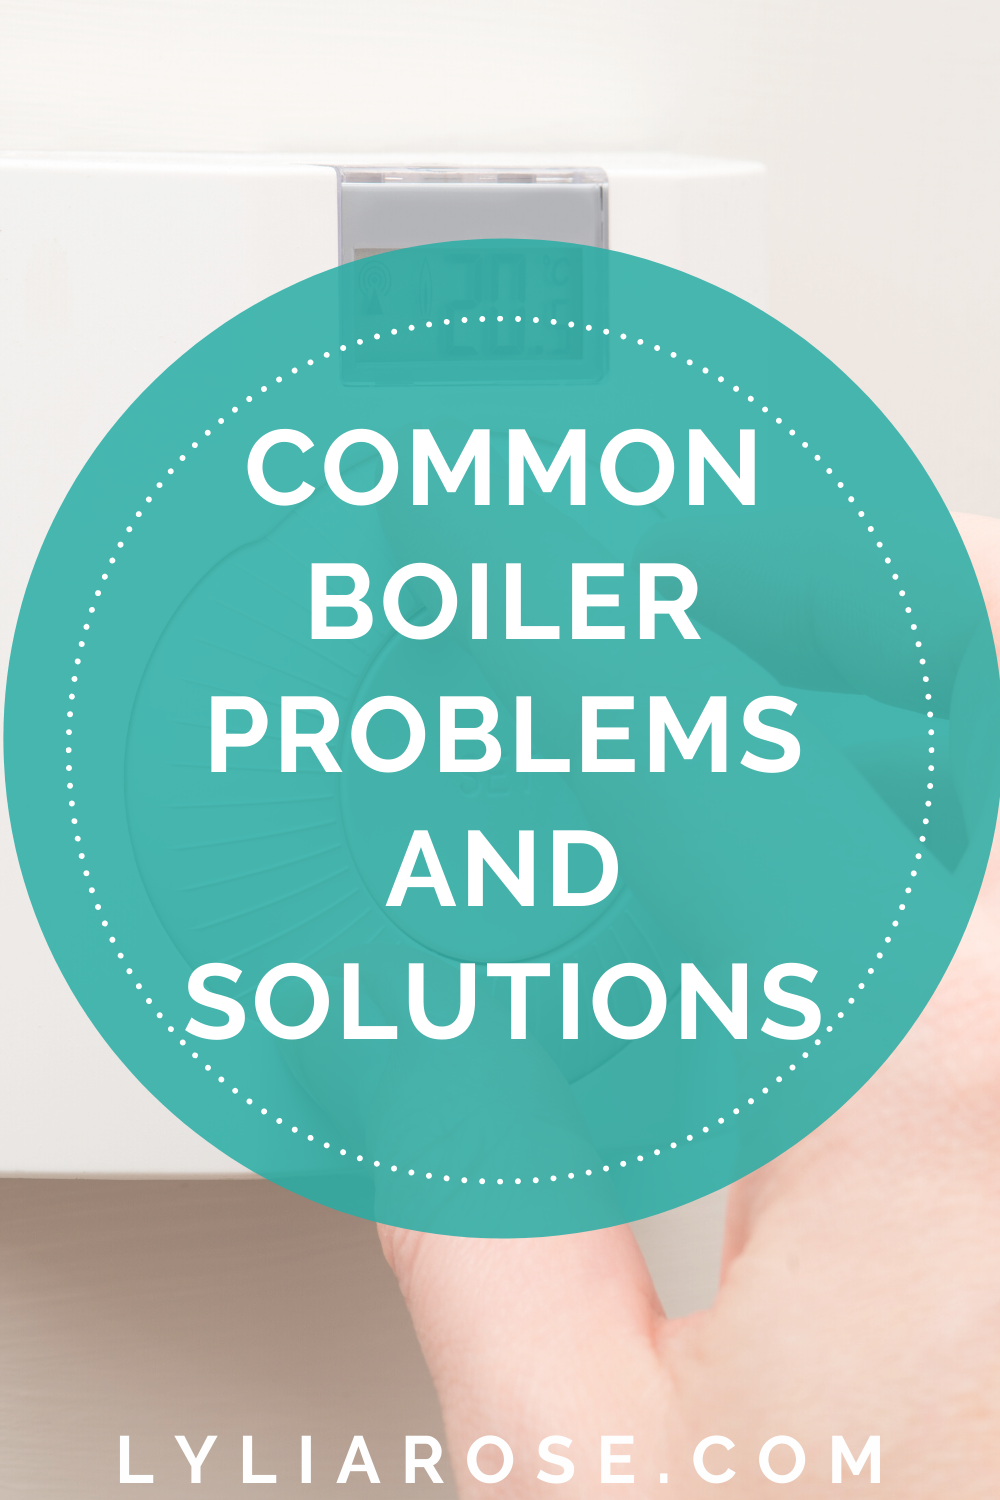 Common boiler problems and solutions (4)